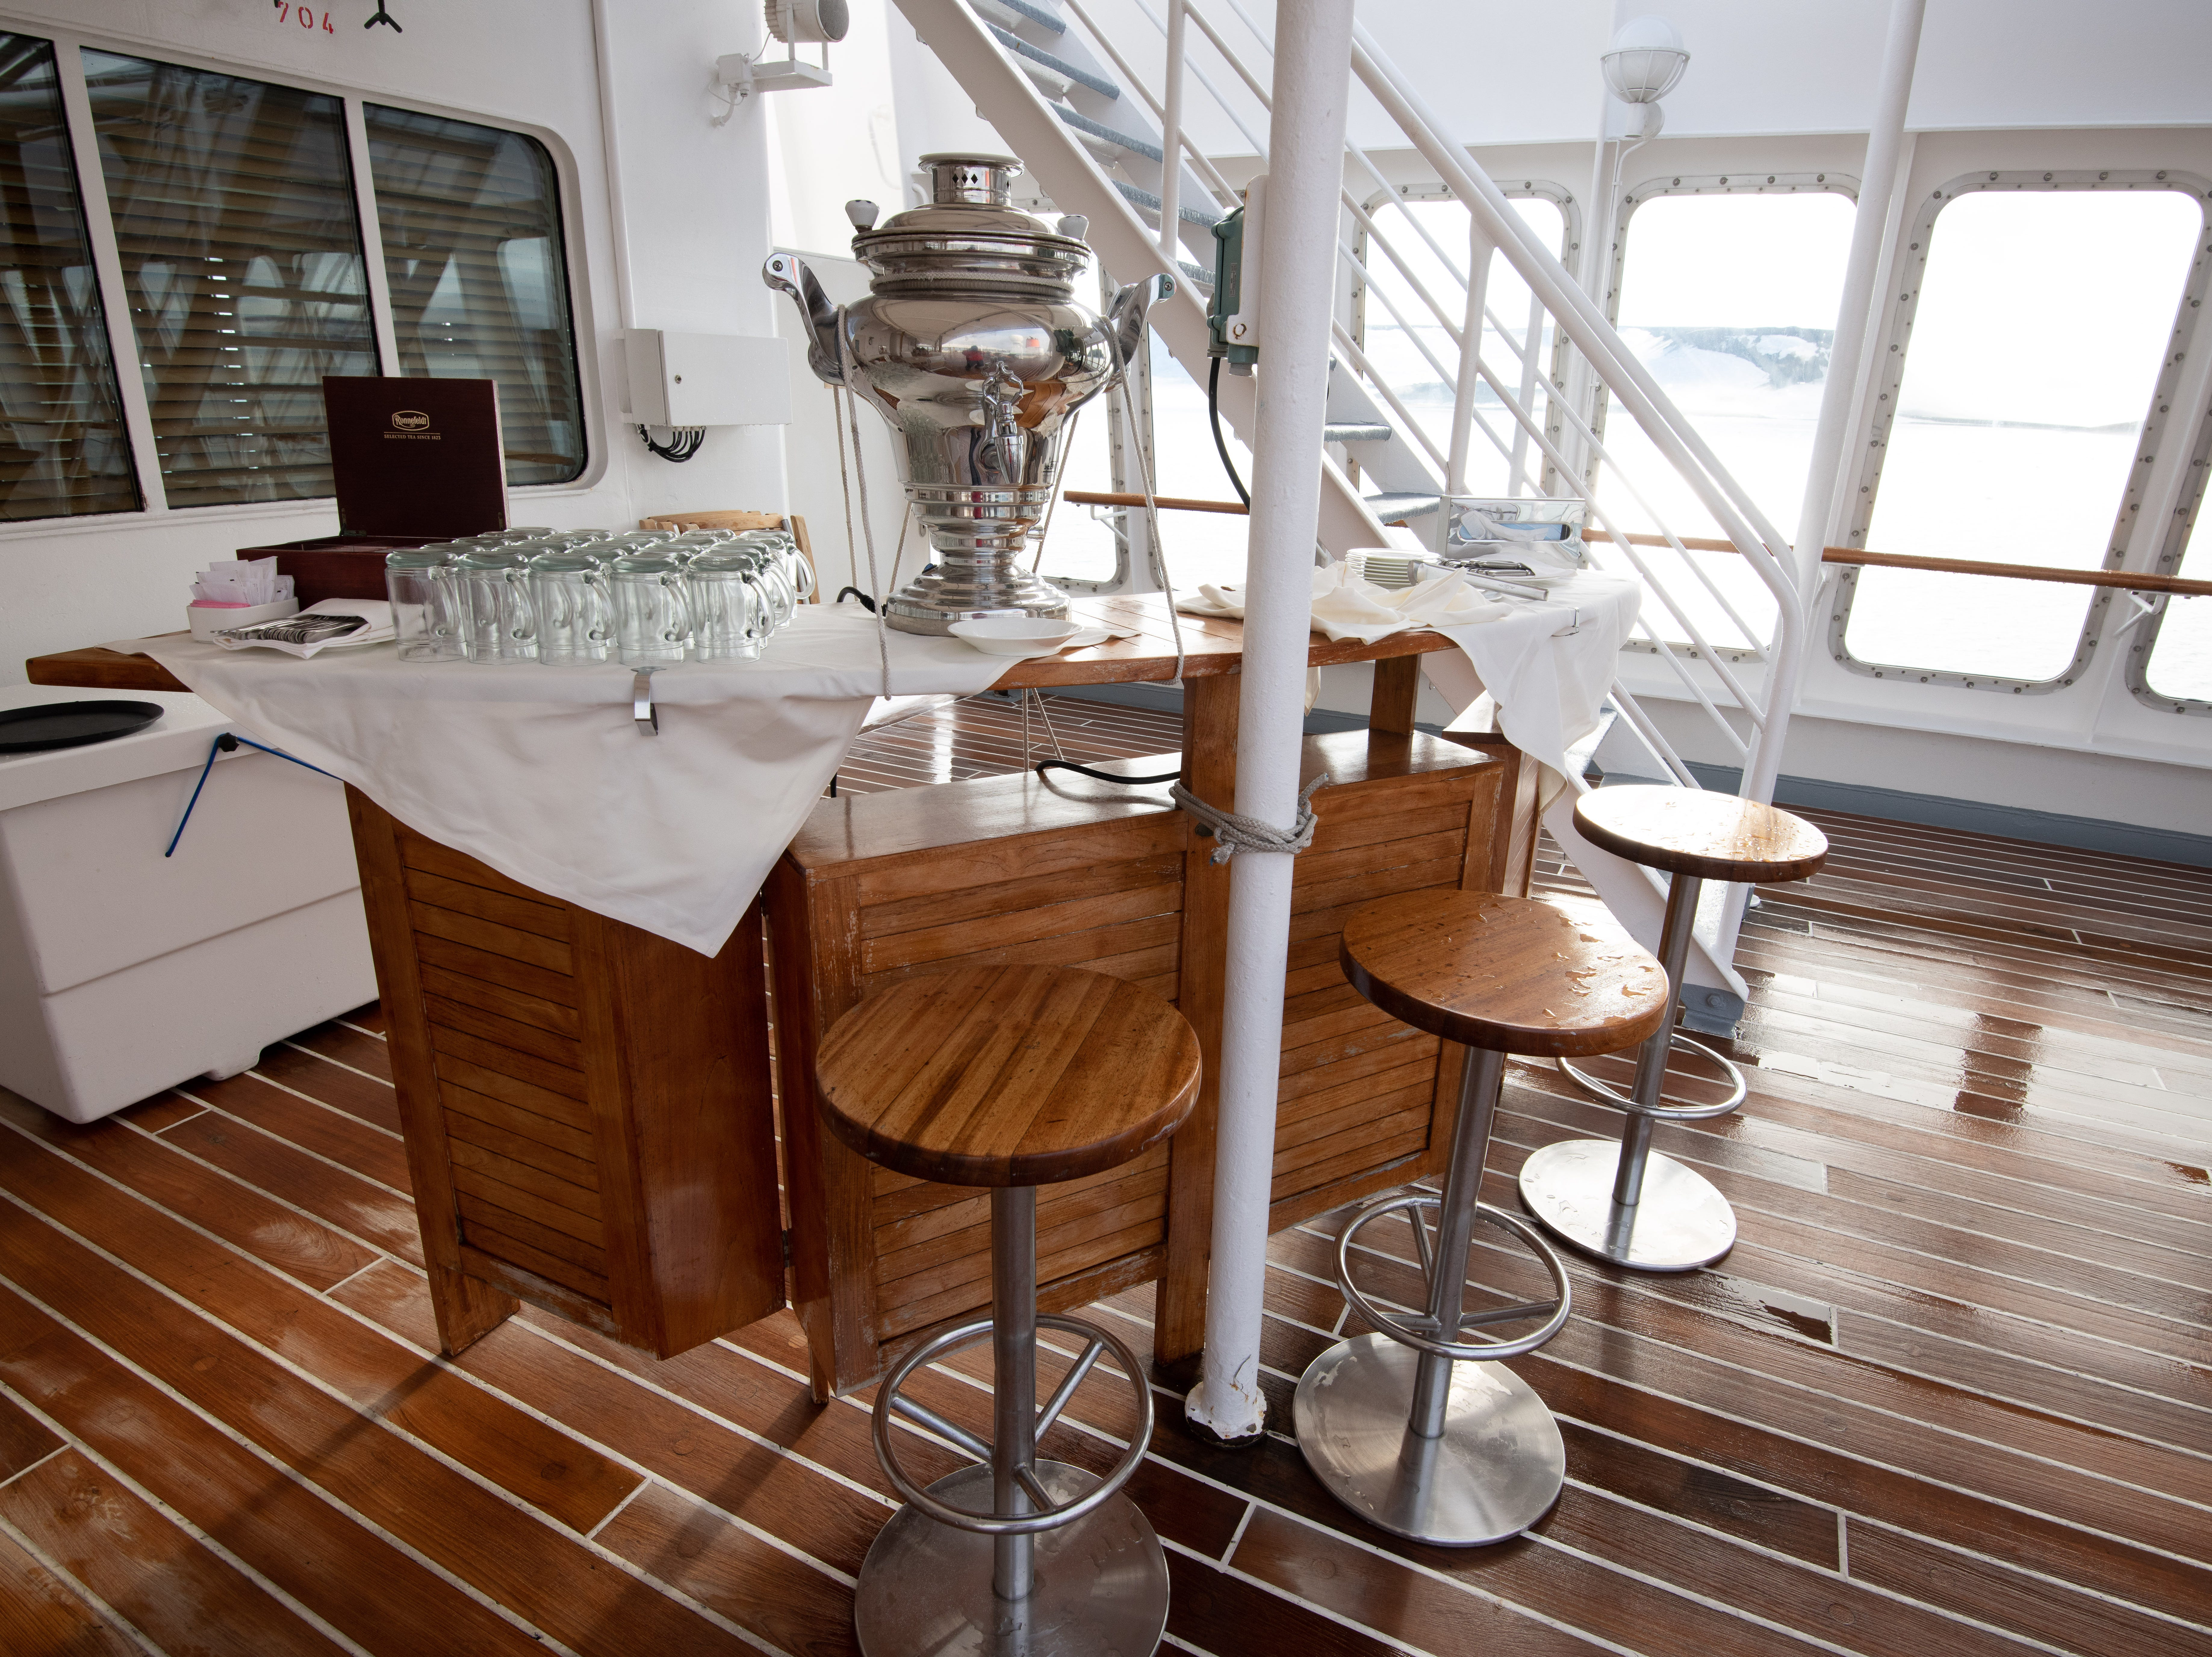 The Sun Deck has a small bar that is normally set up with hot tea throughout the day.